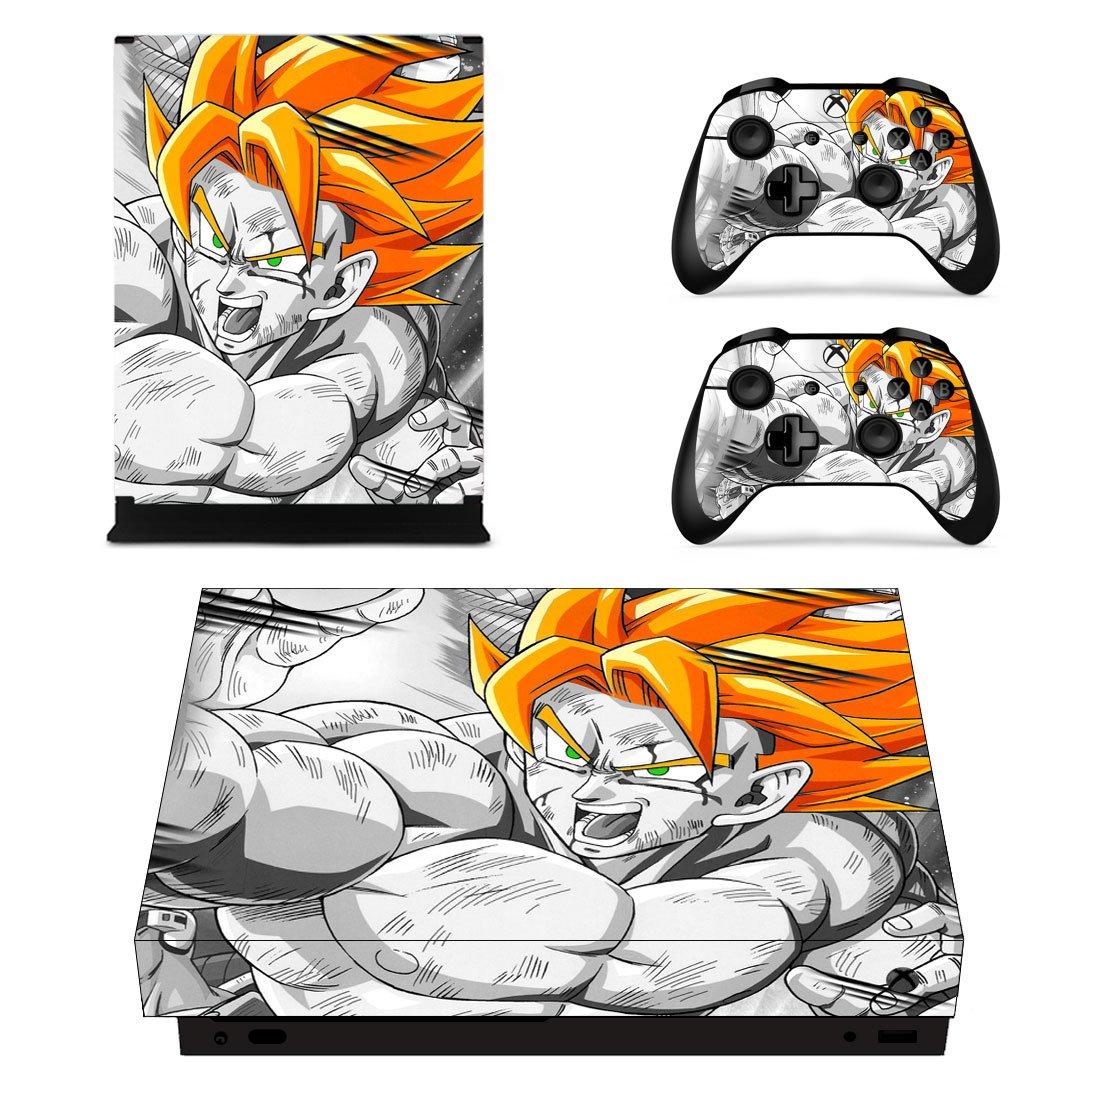 Dragon Ball Xbox One X Skin Sticker Wrap